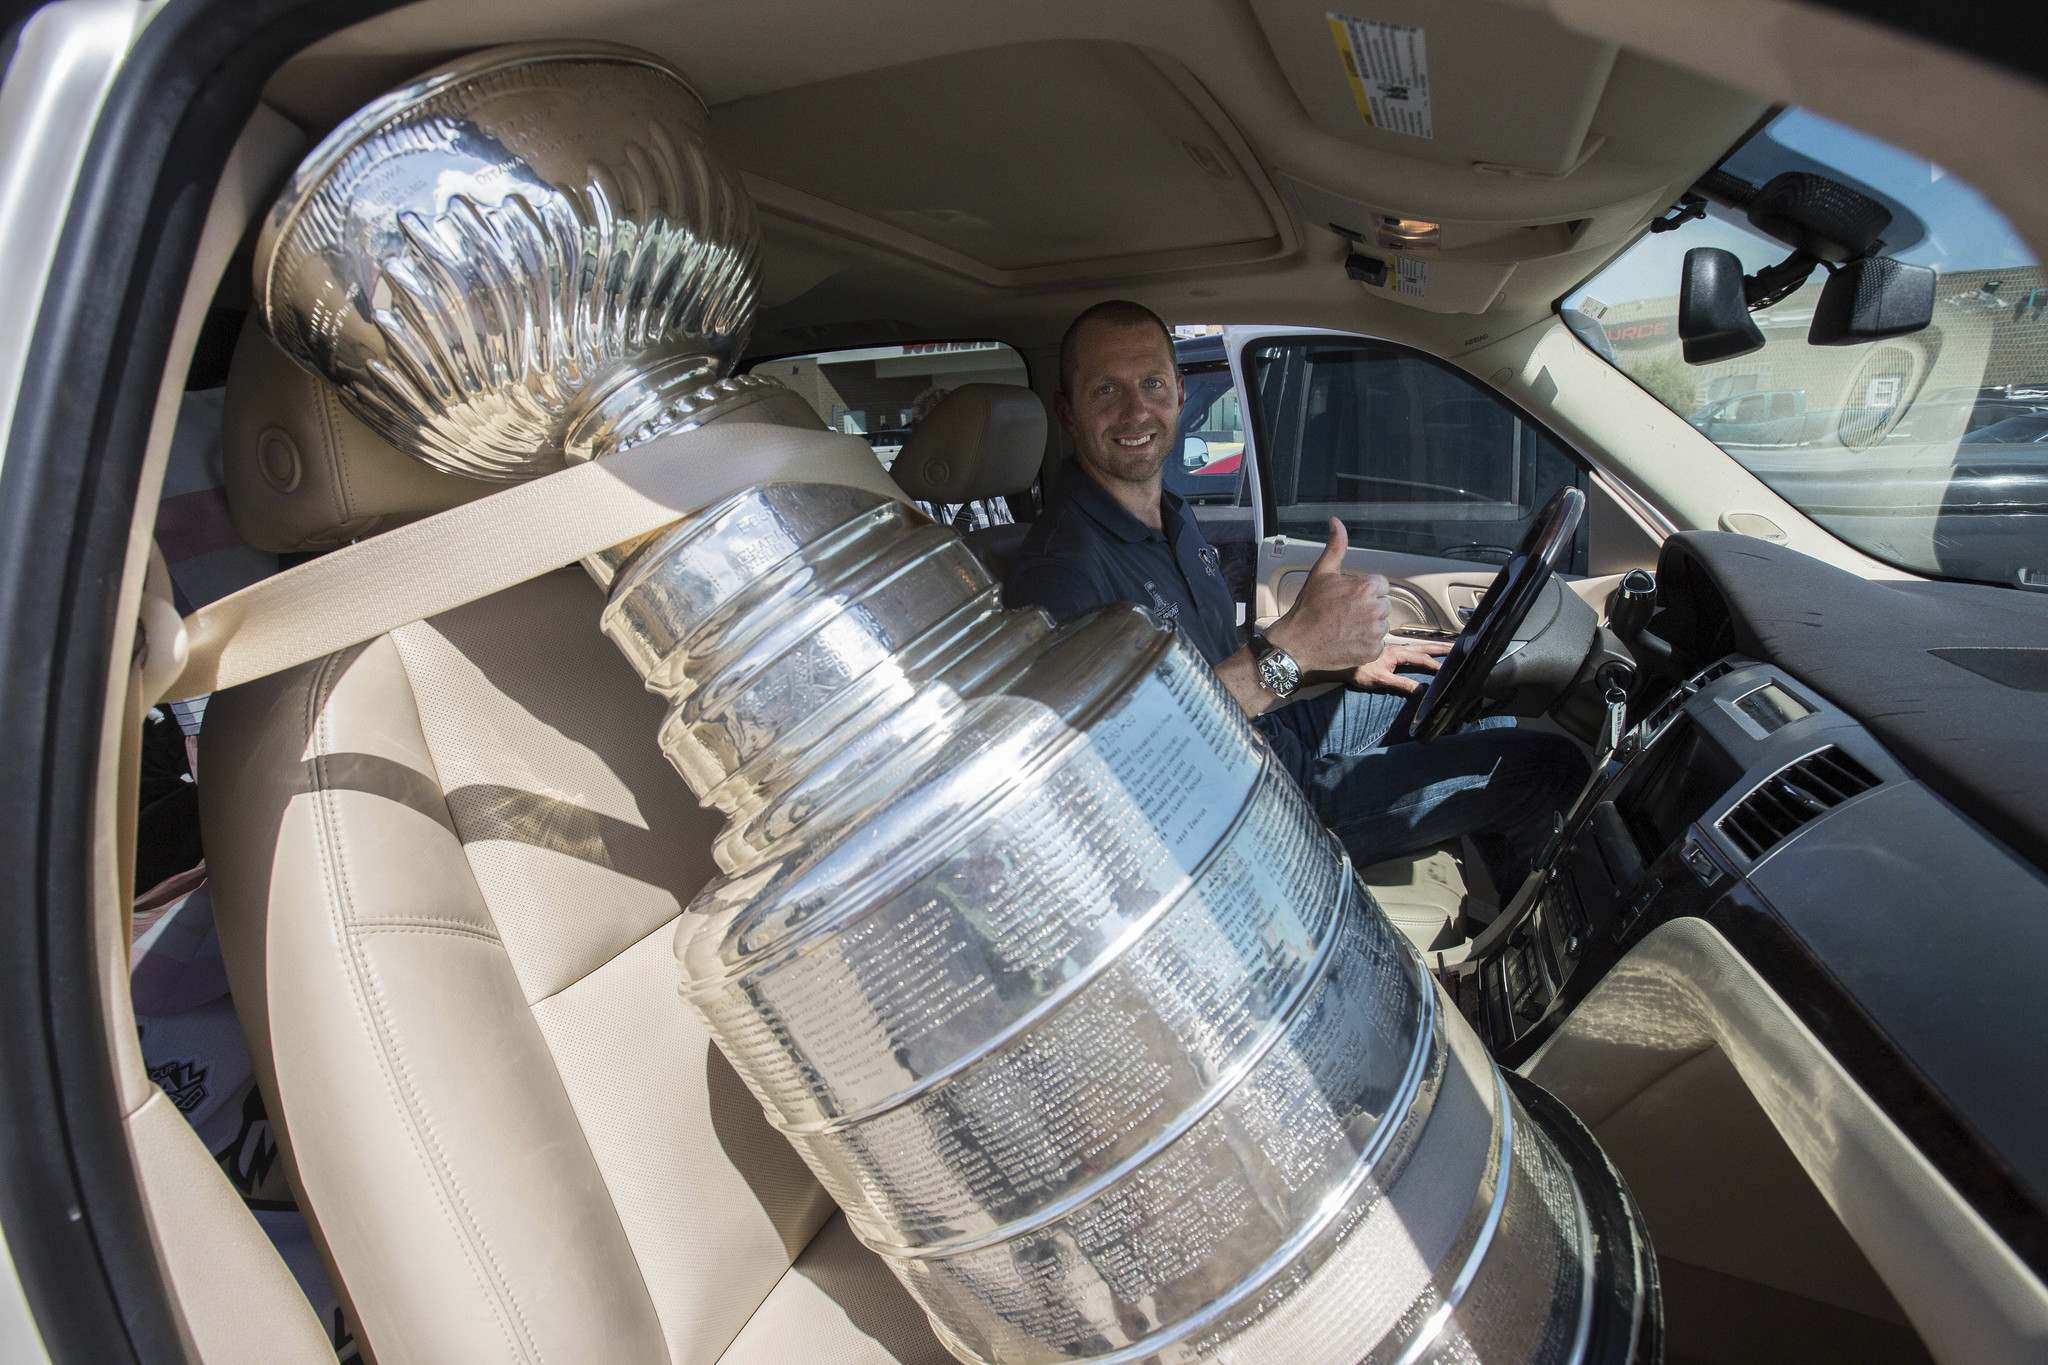 MIKE DEAL / WINNIPEG FREE PRESS</p><p>Pittsburgh Penguins forward Eric Fehr gets behind the wheel of his truck with the Stanley Cup in the passenger seat after spending the afternoon at the Southland Mall in Winkler posing with fans for photographs with the Cup.</p></p>